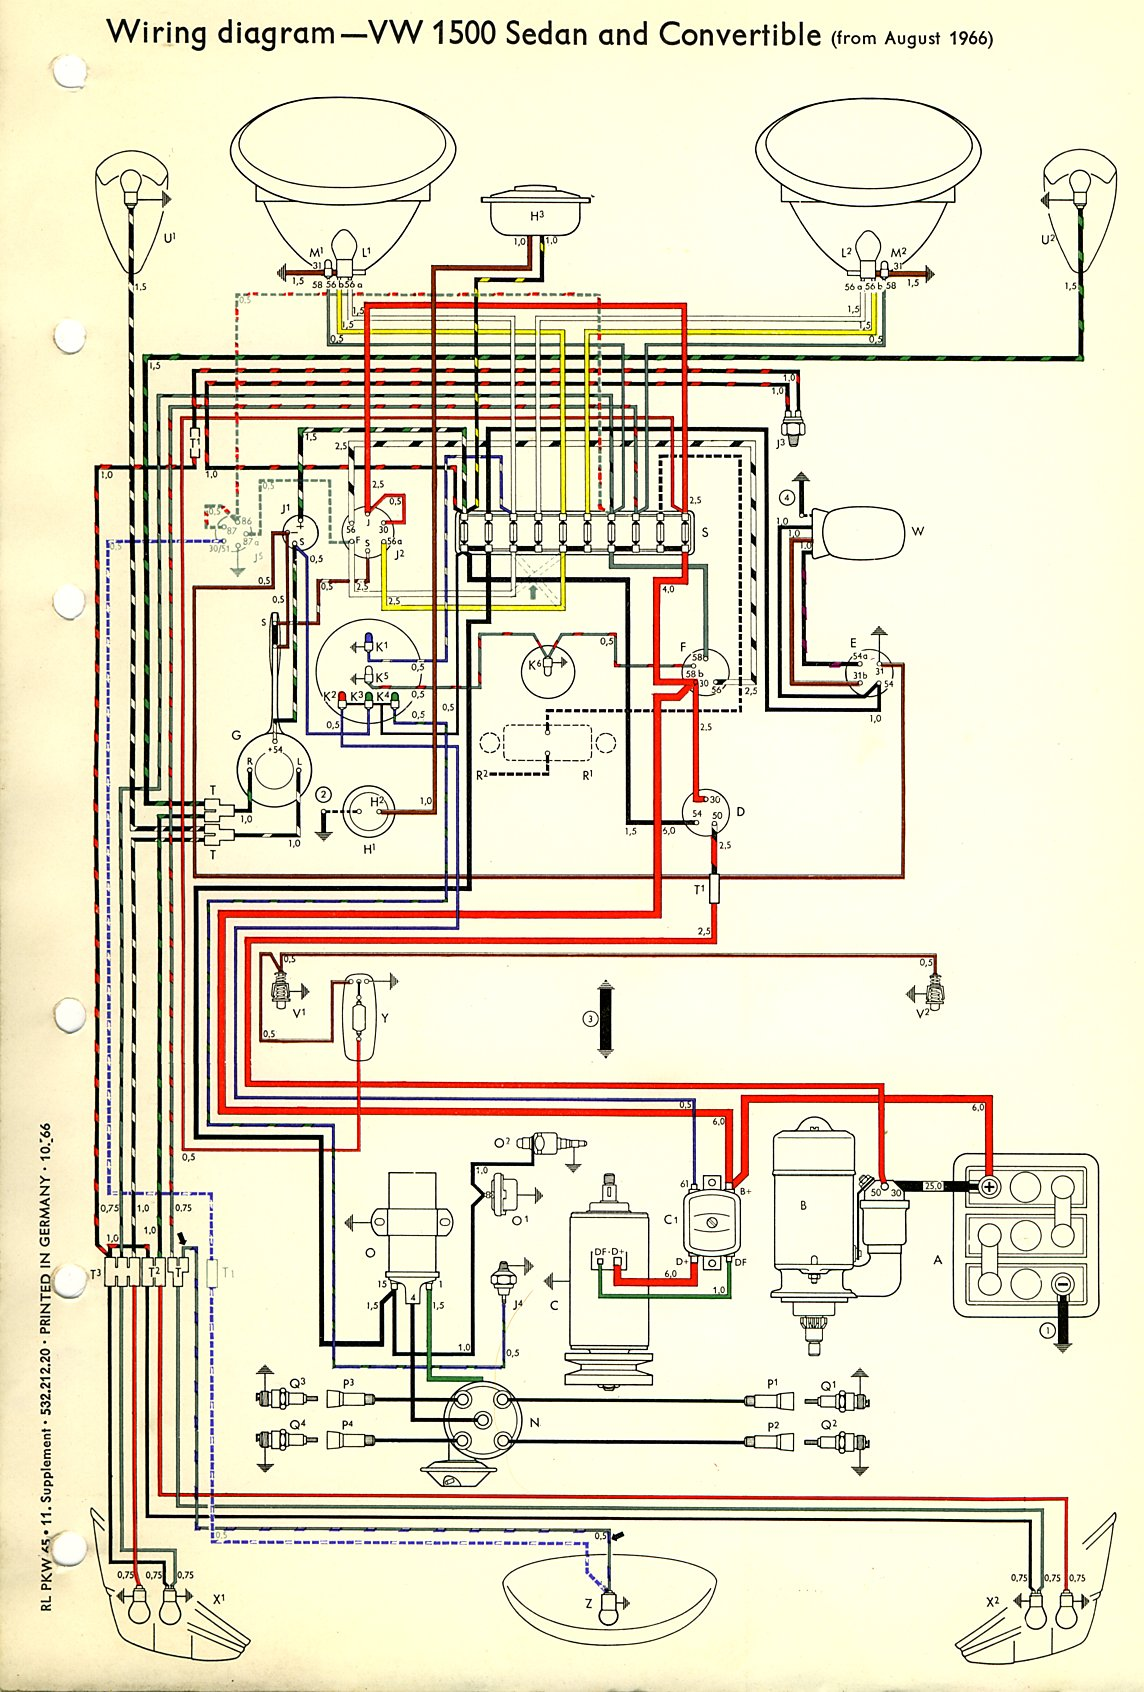 hight resolution of 1974 volkswagen beetle wiring wiring diagram expert 1974 volkswagen wiring diagram 1974 vw wiring diagram